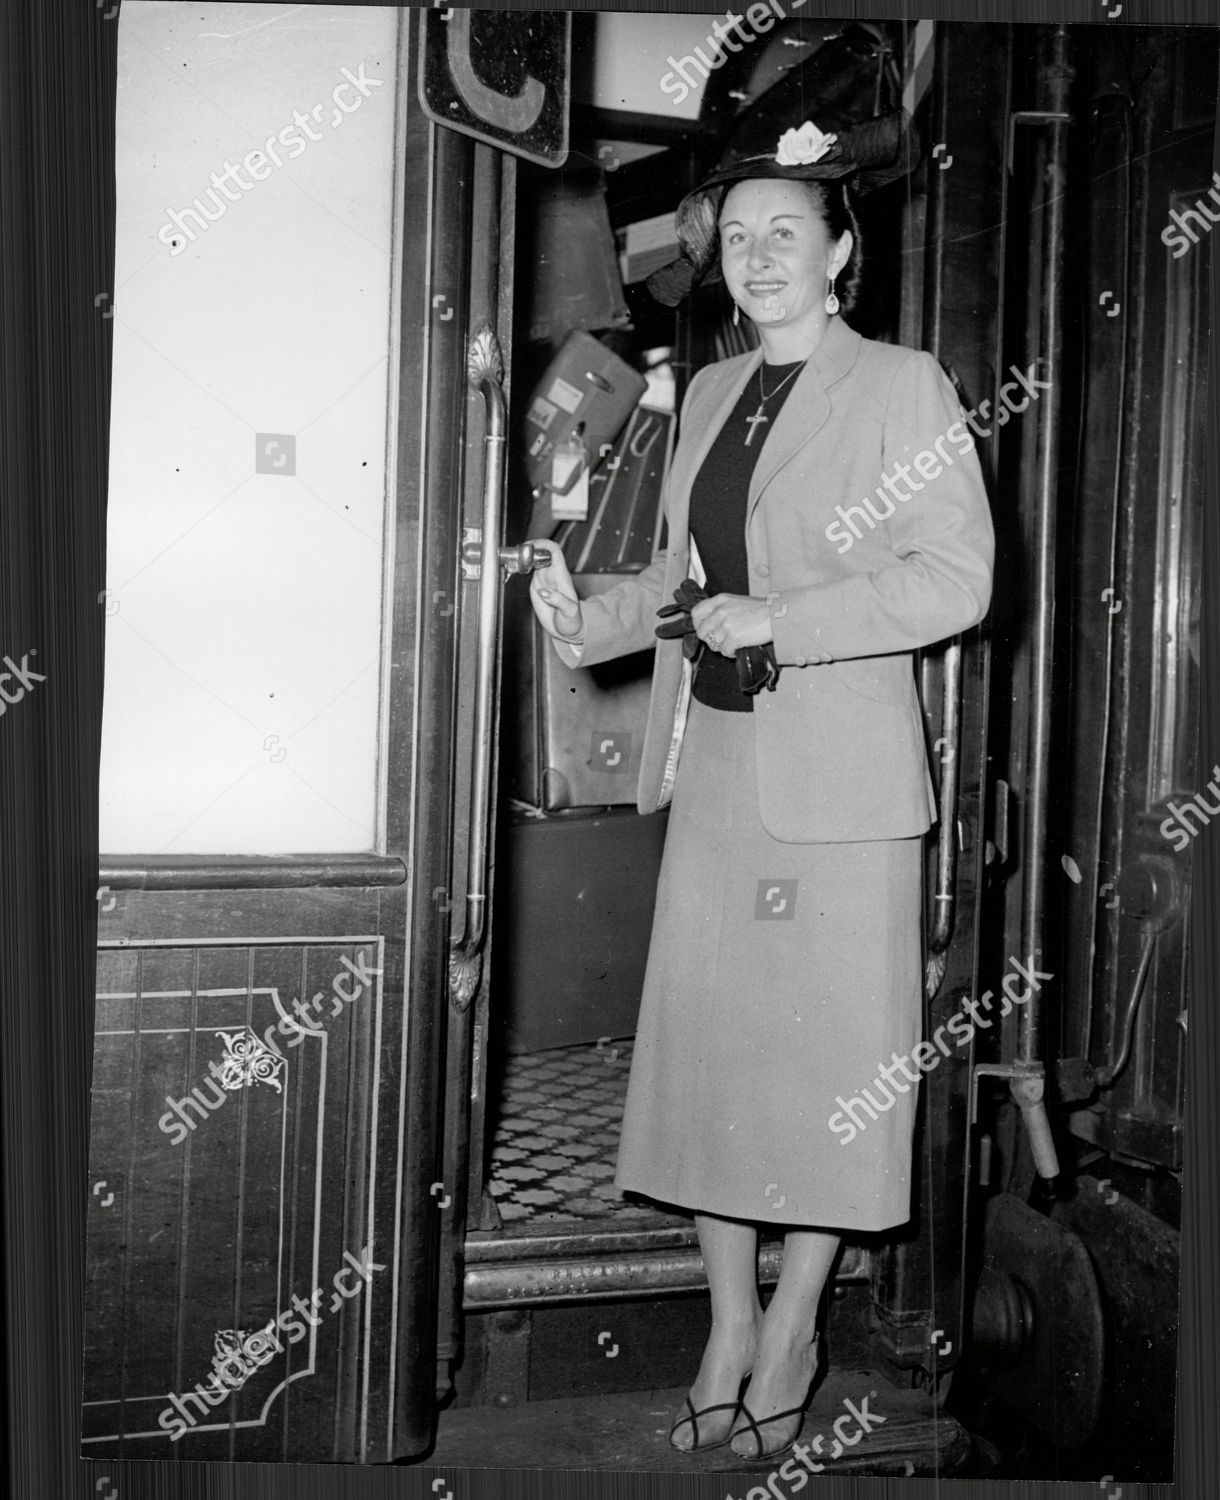 Forum on this topic: Nina Foch, jean-cadell/